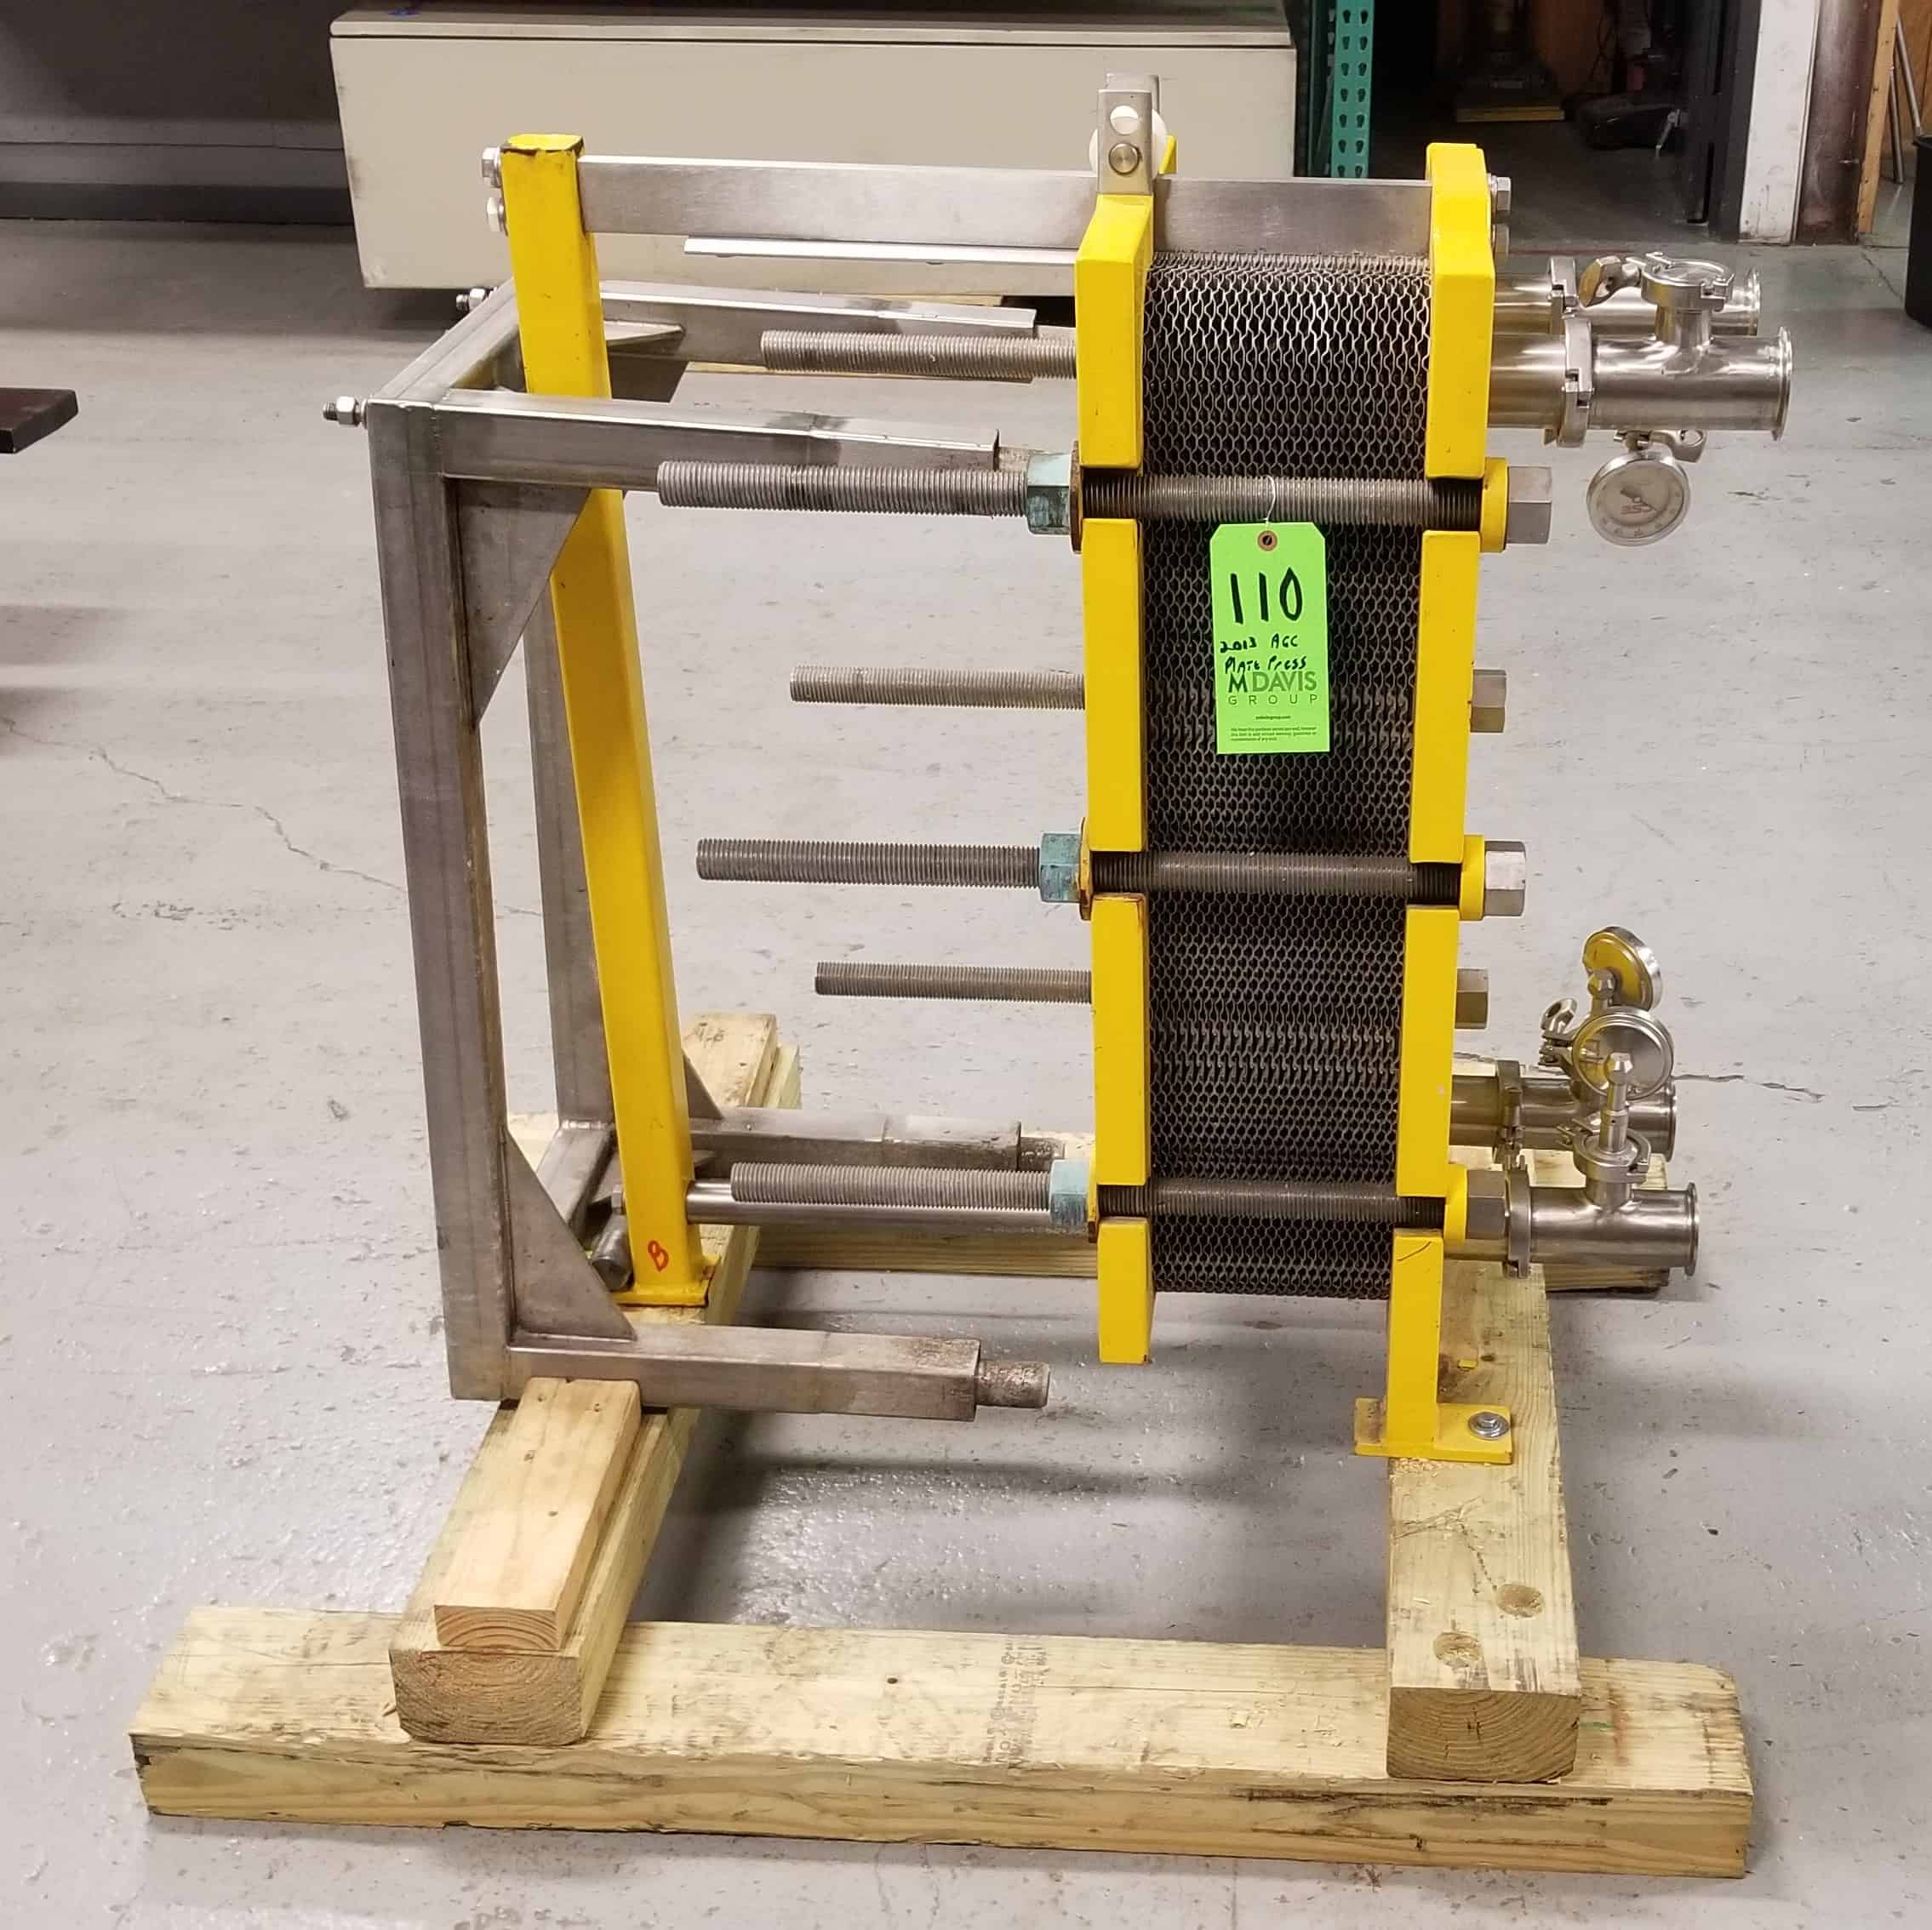 """AGC 38"""" H S/S Plate Press, Model PRO2-F, S/N 2013122 with (46) S/S Plates, 2-1/2"""" Clamp Type Connections with Gauges, 250 Degree Max. Temp, 150 Max. psi includes S/S Stand"""